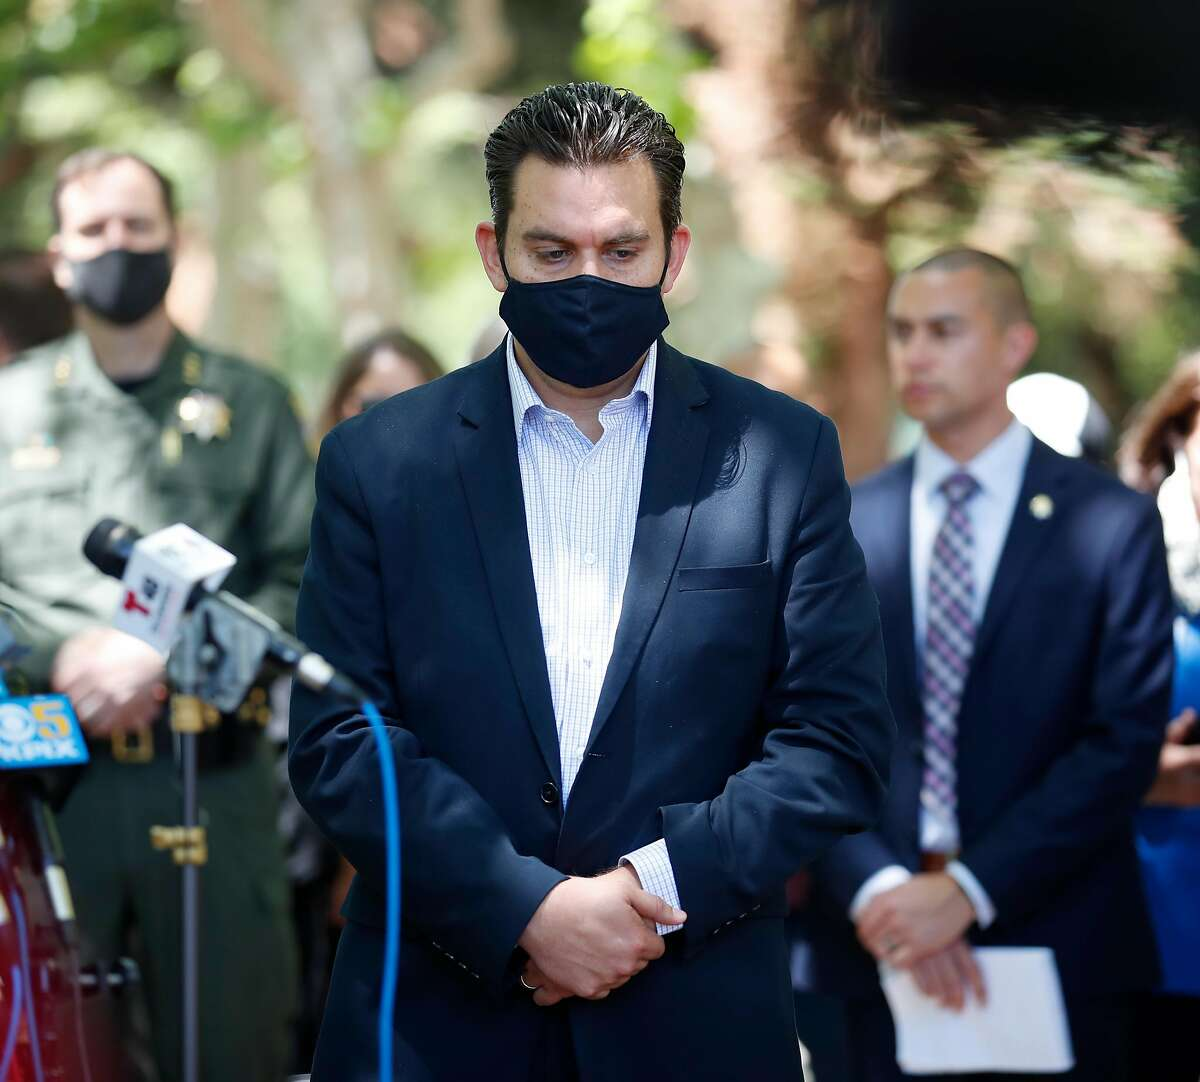 San Jose City Council Member Raul Peralez says a good friend of his is among those unaccounted for in the mass shooting.